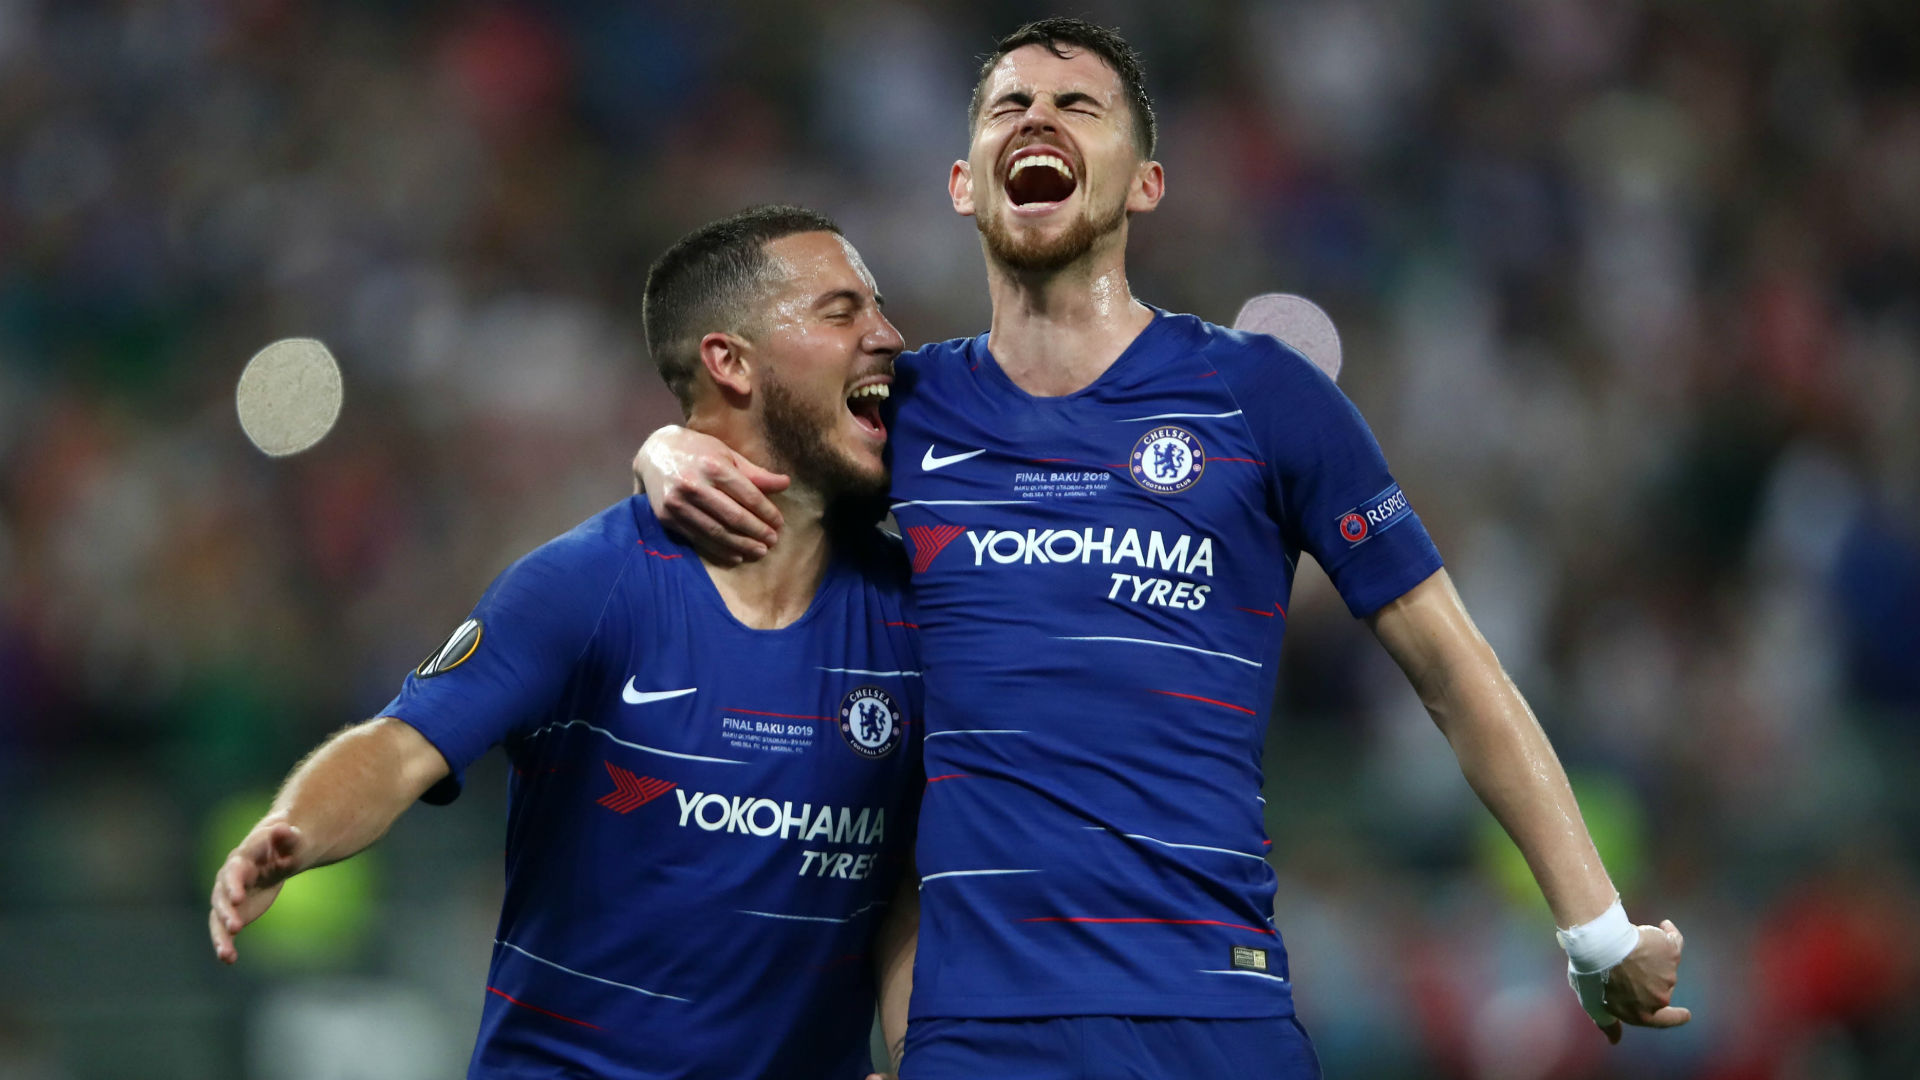 Arsenal Vs. Chelsea Results: Highlights From Chelsea's